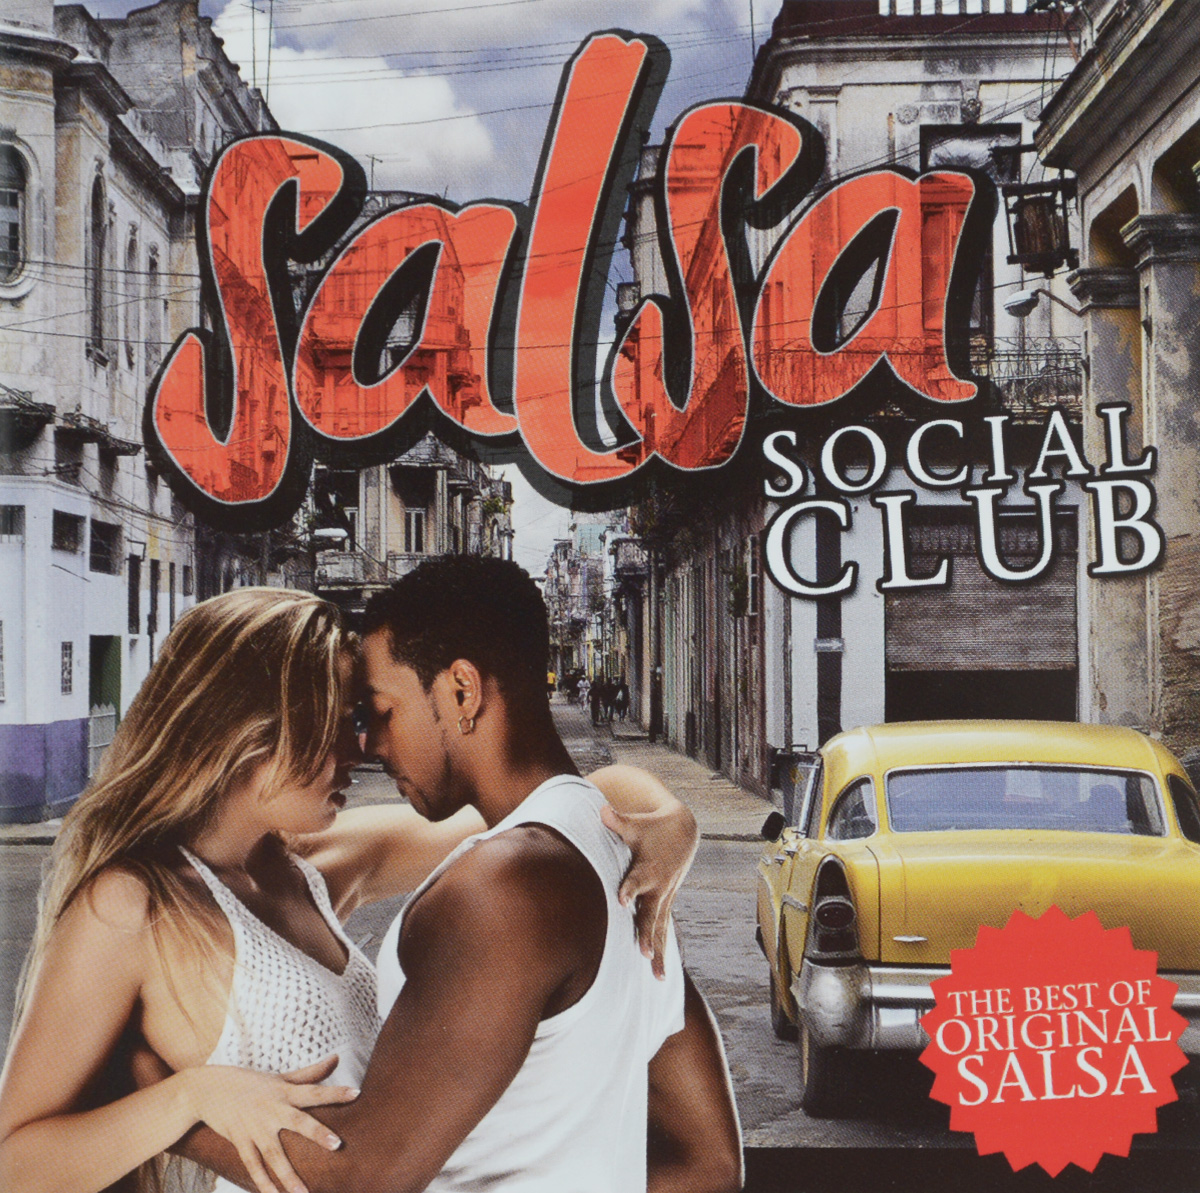 Salsa Social Club (2 CD) cd диск various artists the classic rb collection 3 cd